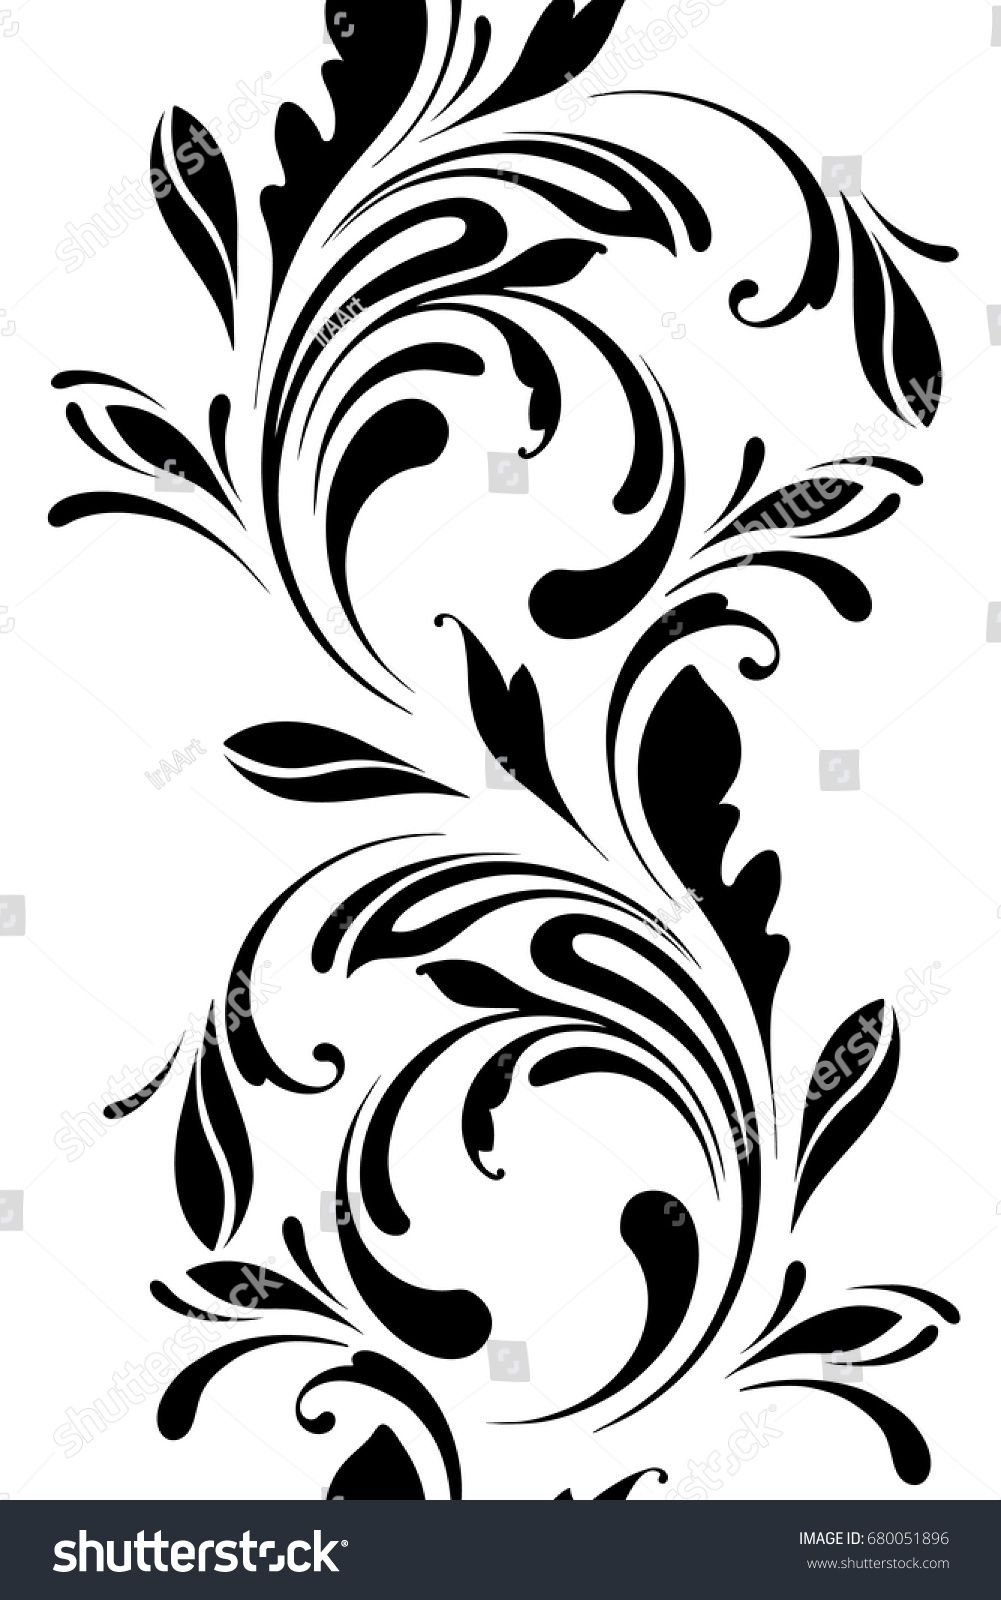 Outline floral seamless pattern ornamental border for ribbons